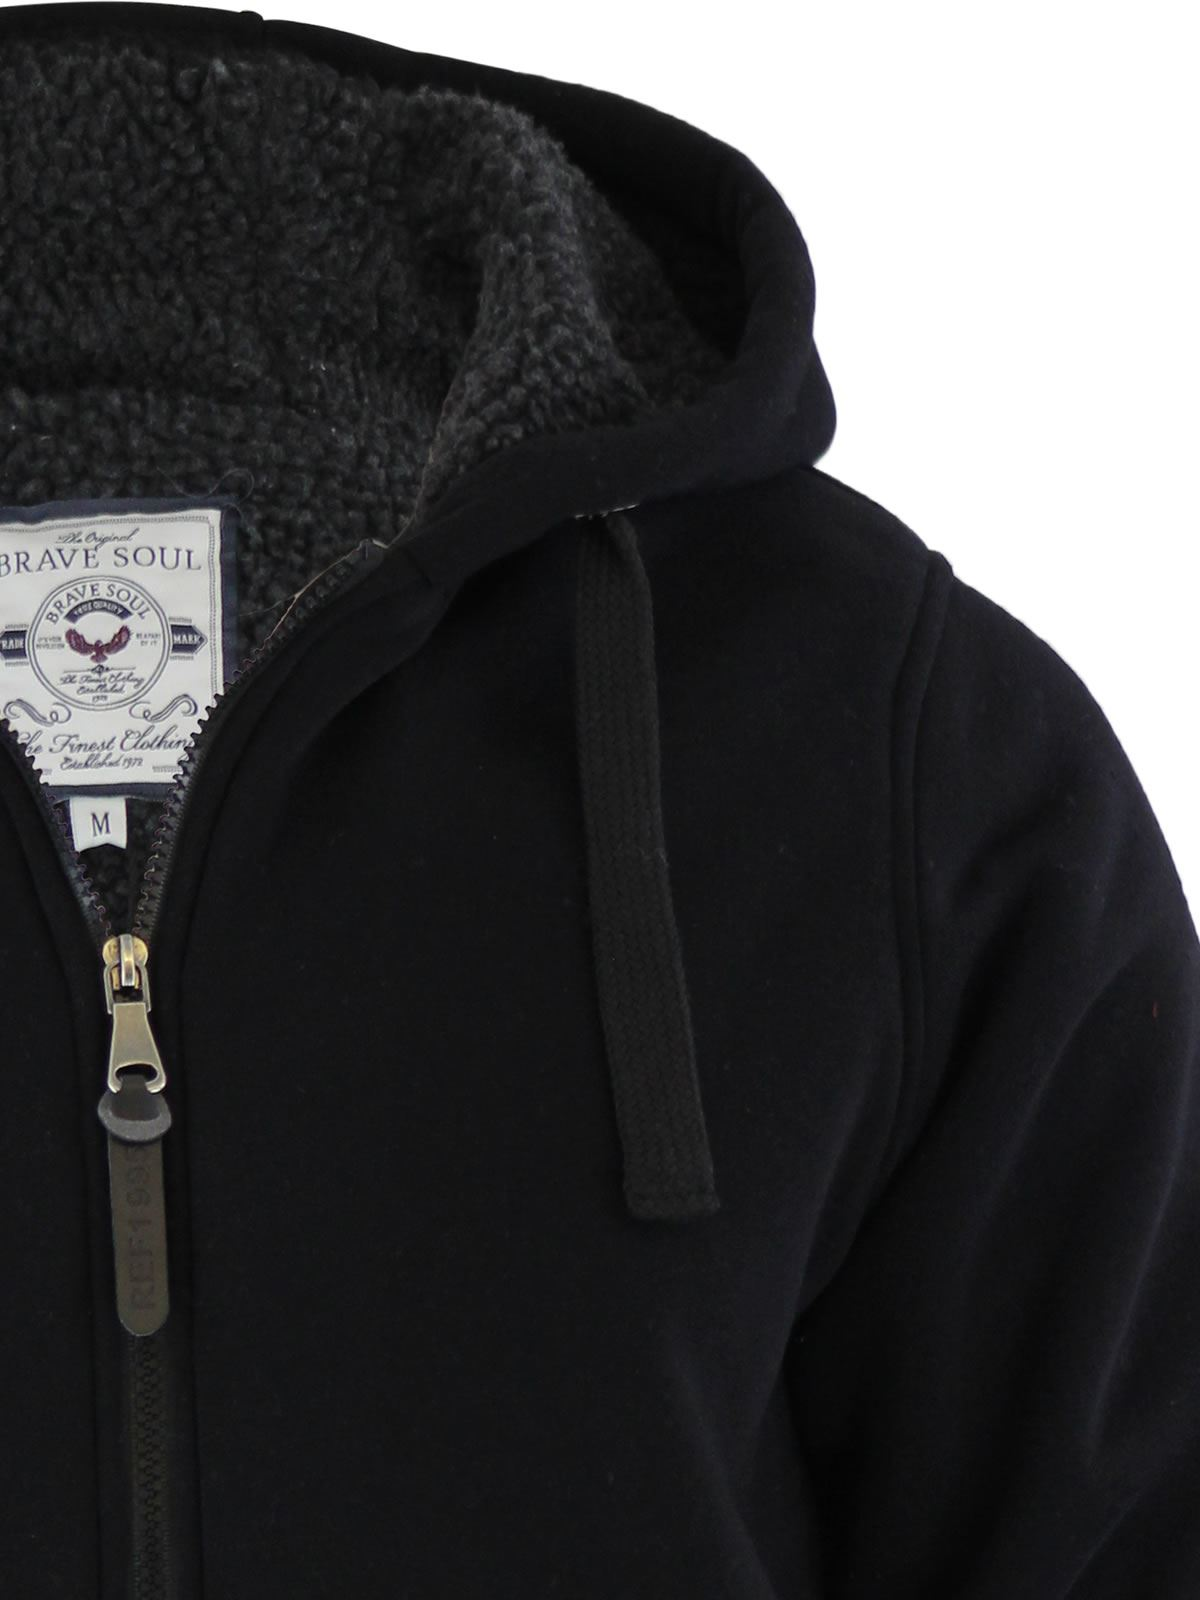 Mens-Hoodie-Brave-Soul-Zone-Sherpa-Fleece-Lined-Zip-Up-Hooded-Sweater thumbnail 22